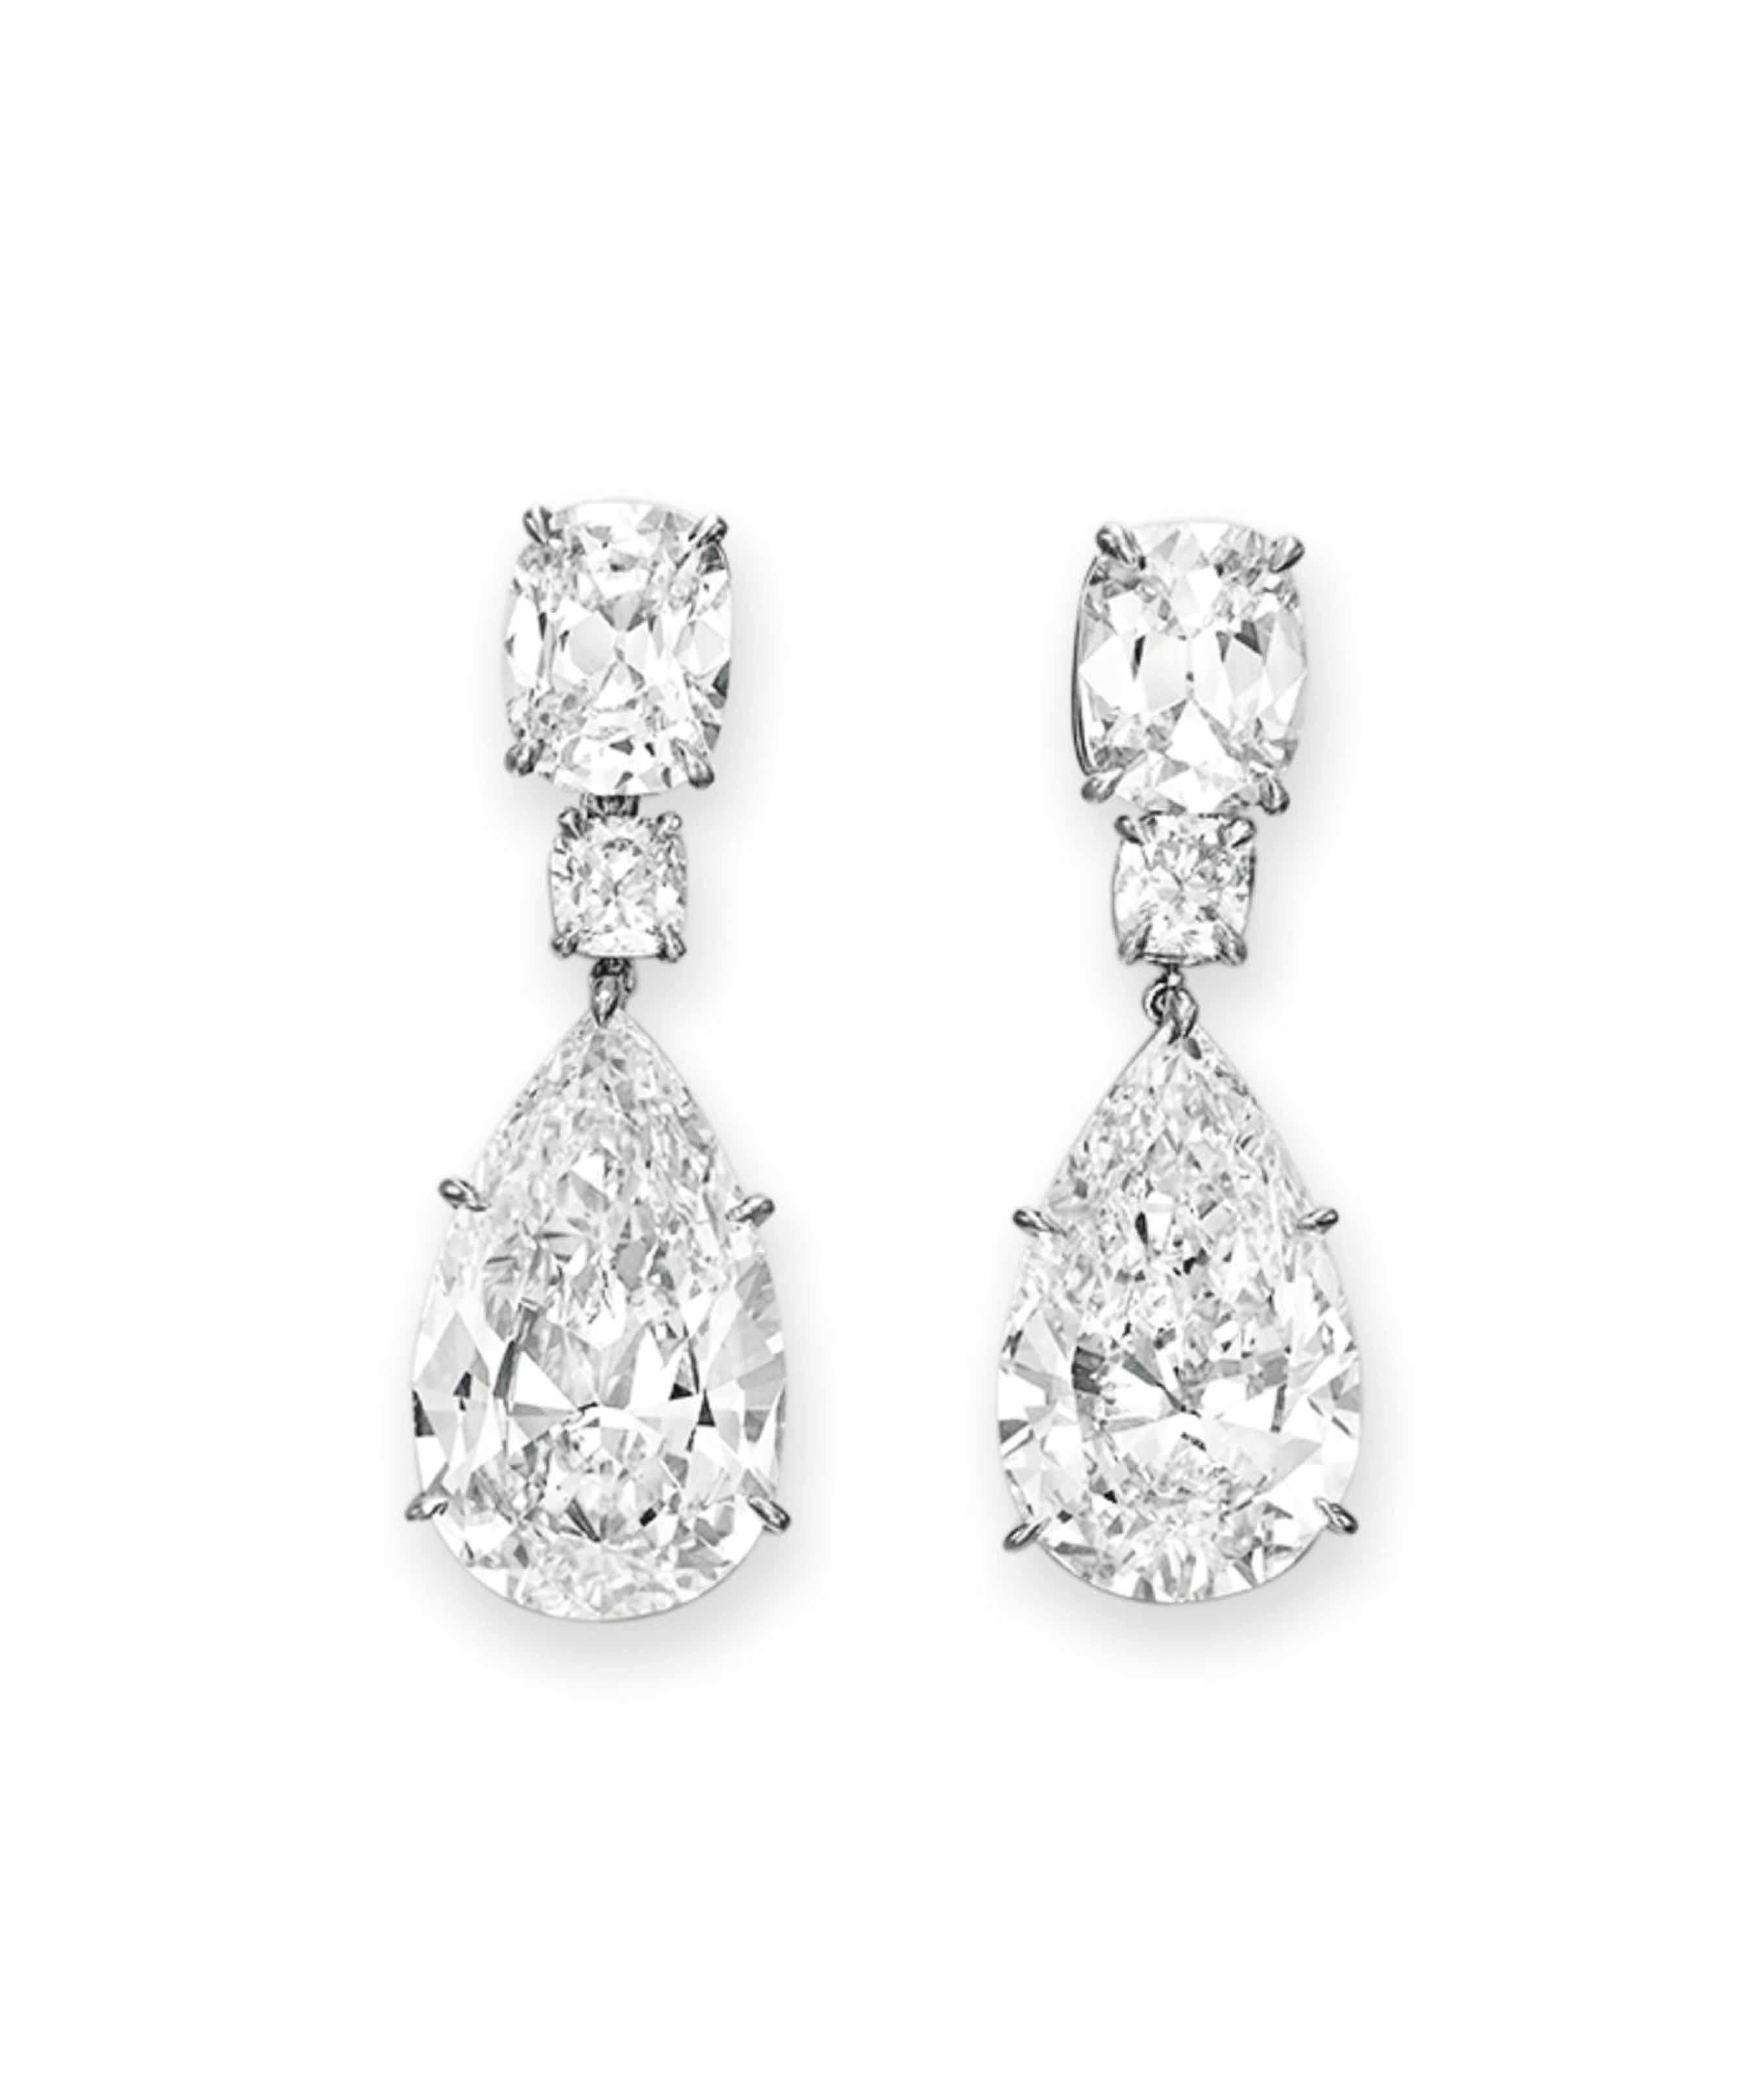 A PAIR OF IMPORTANT DIAMOND EAR PENDANTS, BY LEVIEV